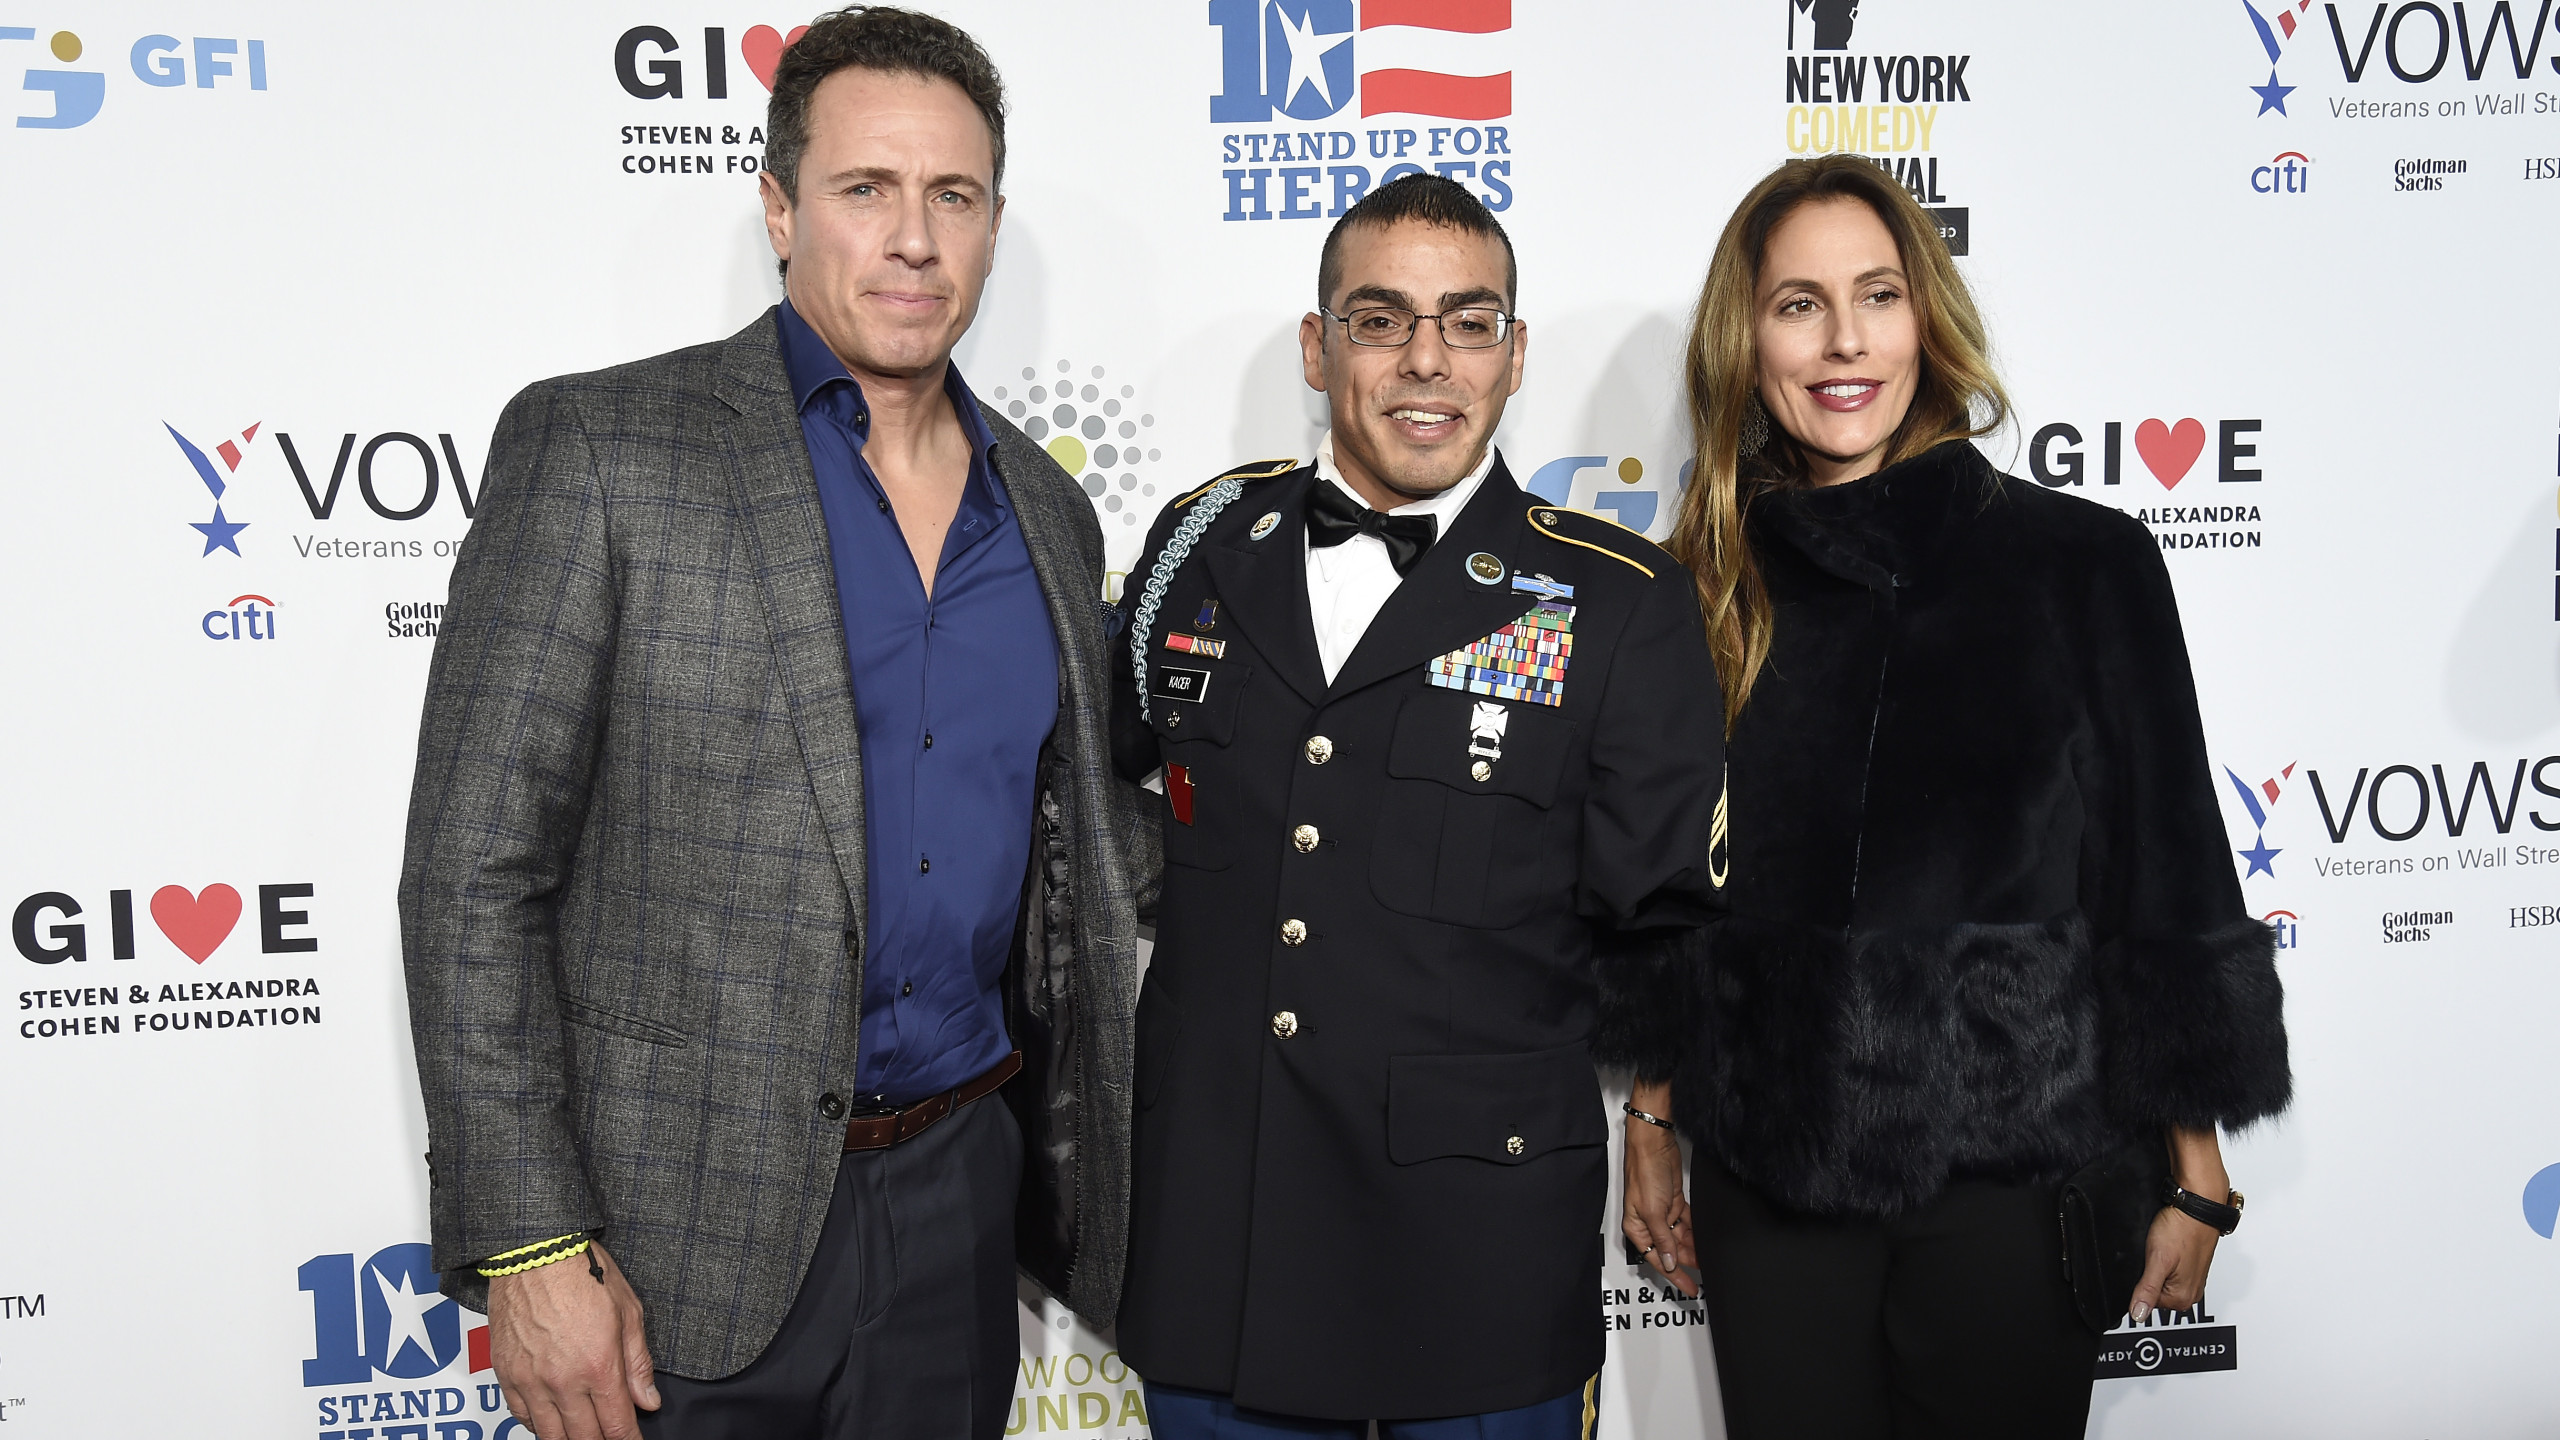 The New York Comedy Festival And The Bob Woodruff Foundation Present The 10th Annual Stand Up For Heroes Event